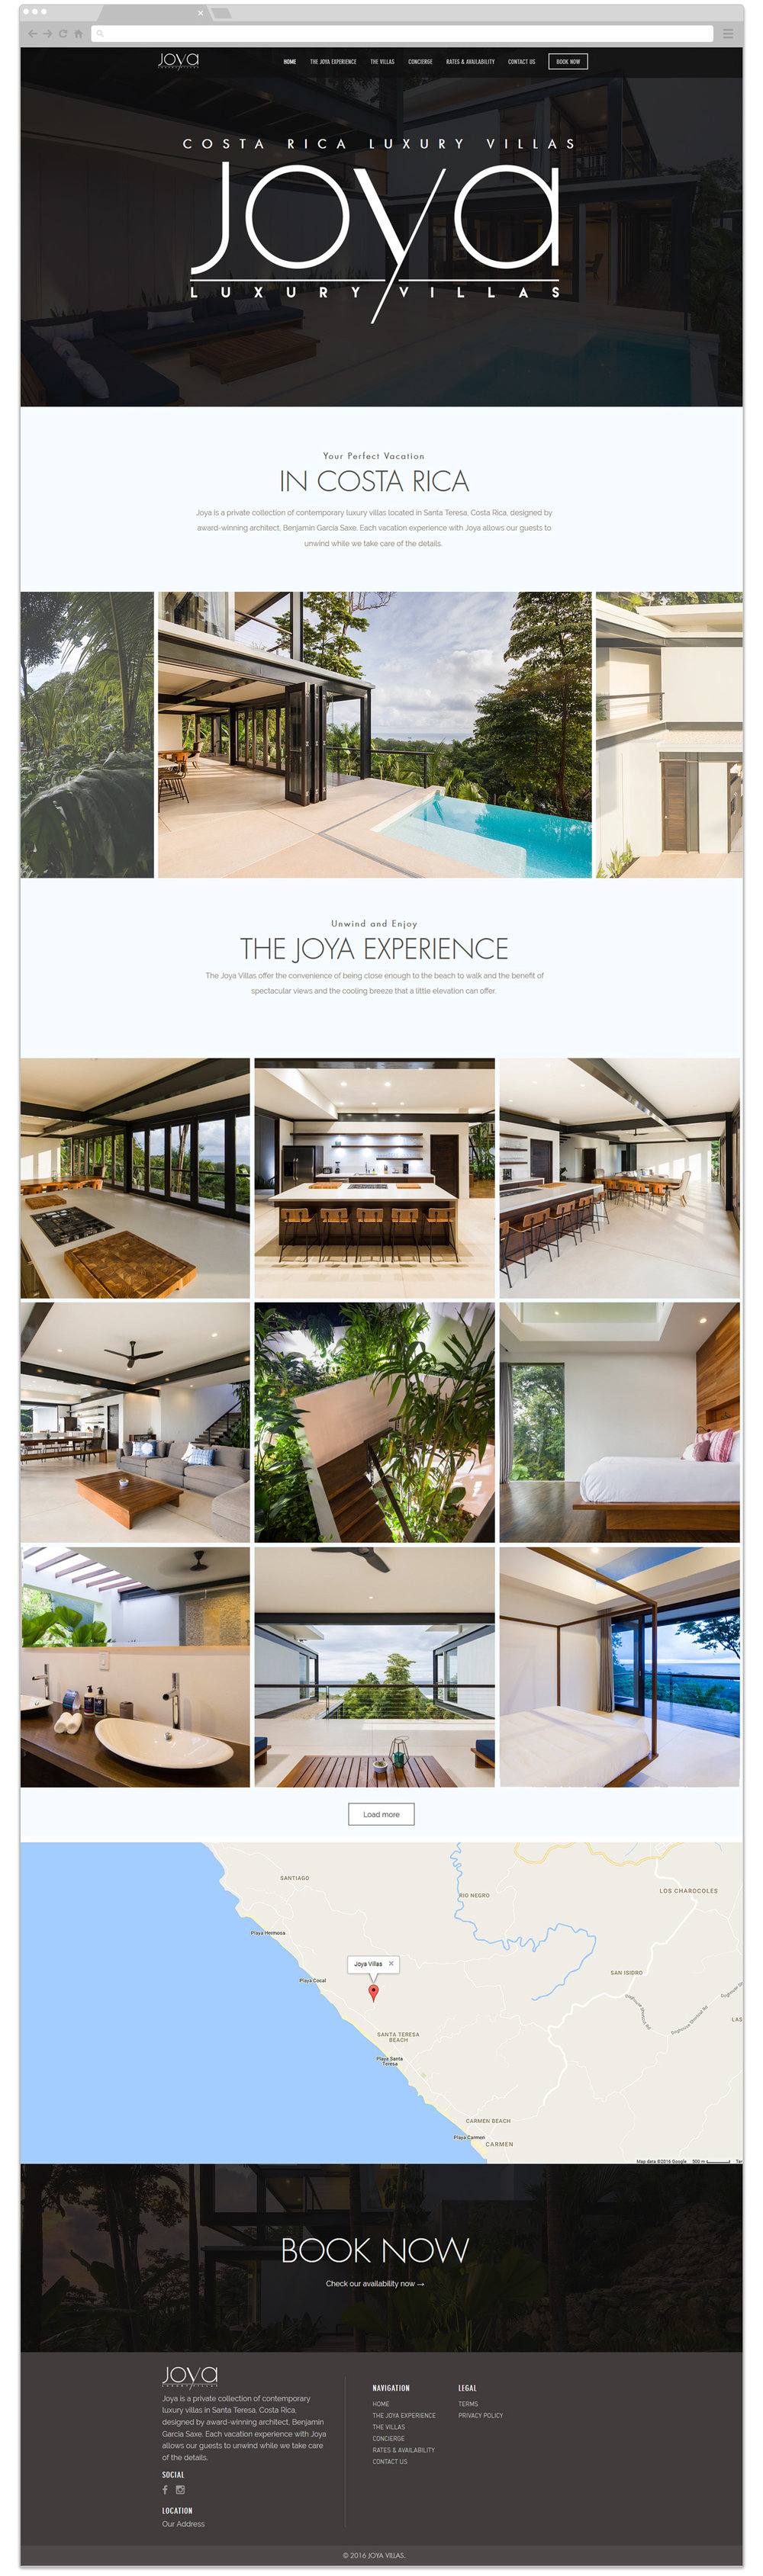 river-stone-creative-co-websites-joya-villas-1